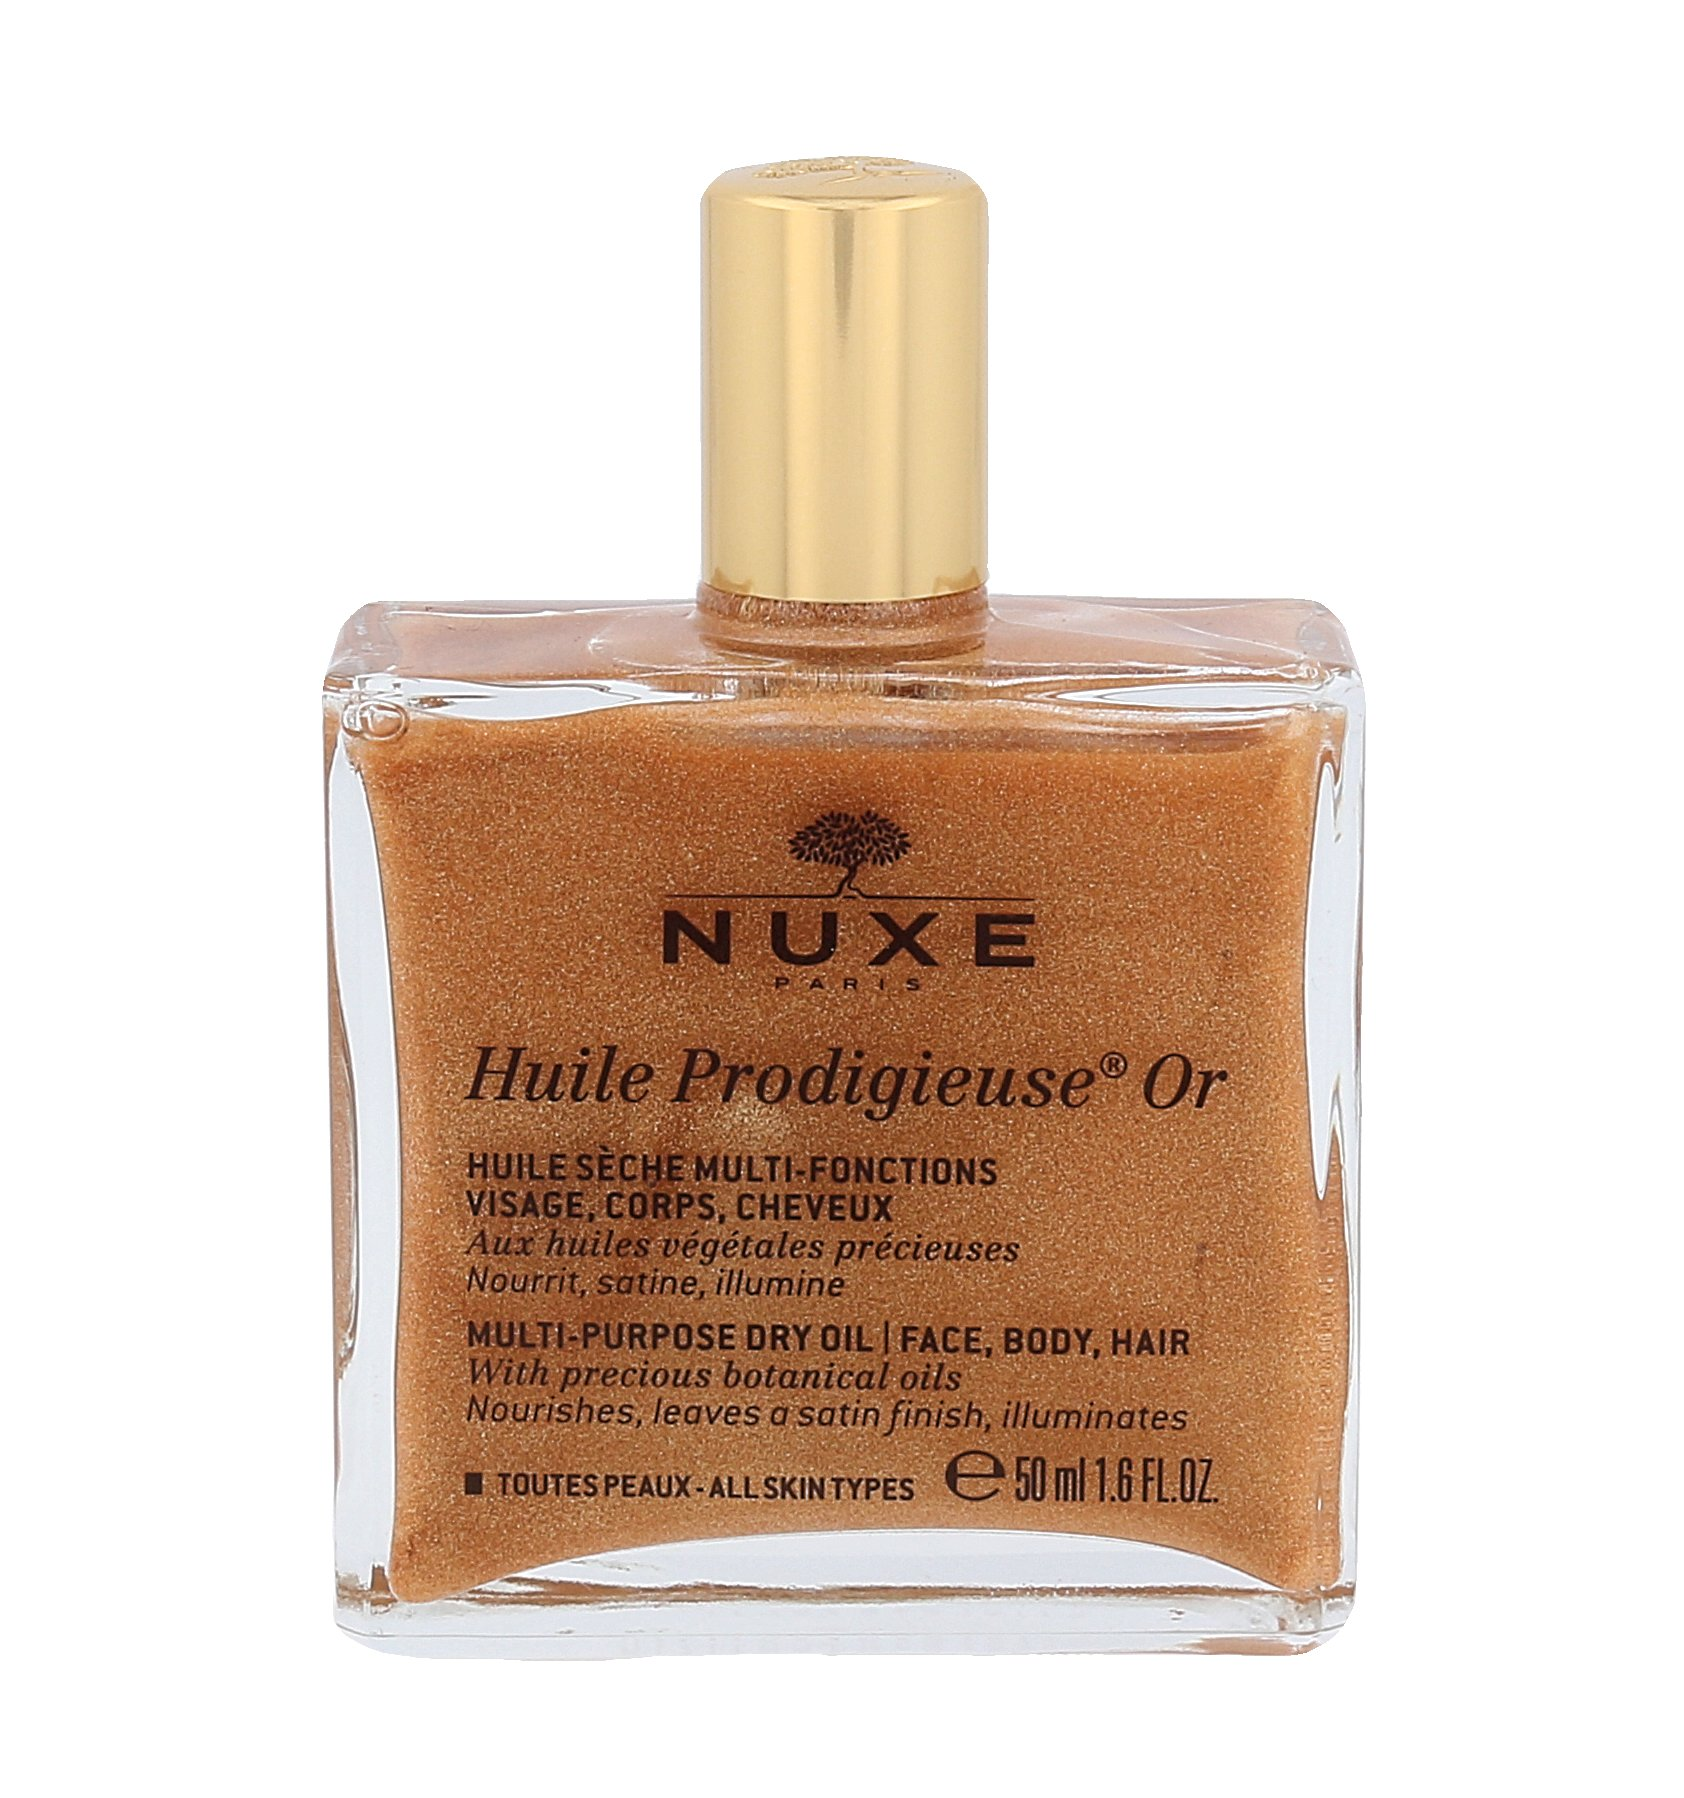 NUXE Huile Prodigieuse Or Multi Purpose Dry Oil Face, Body, Hair (W)